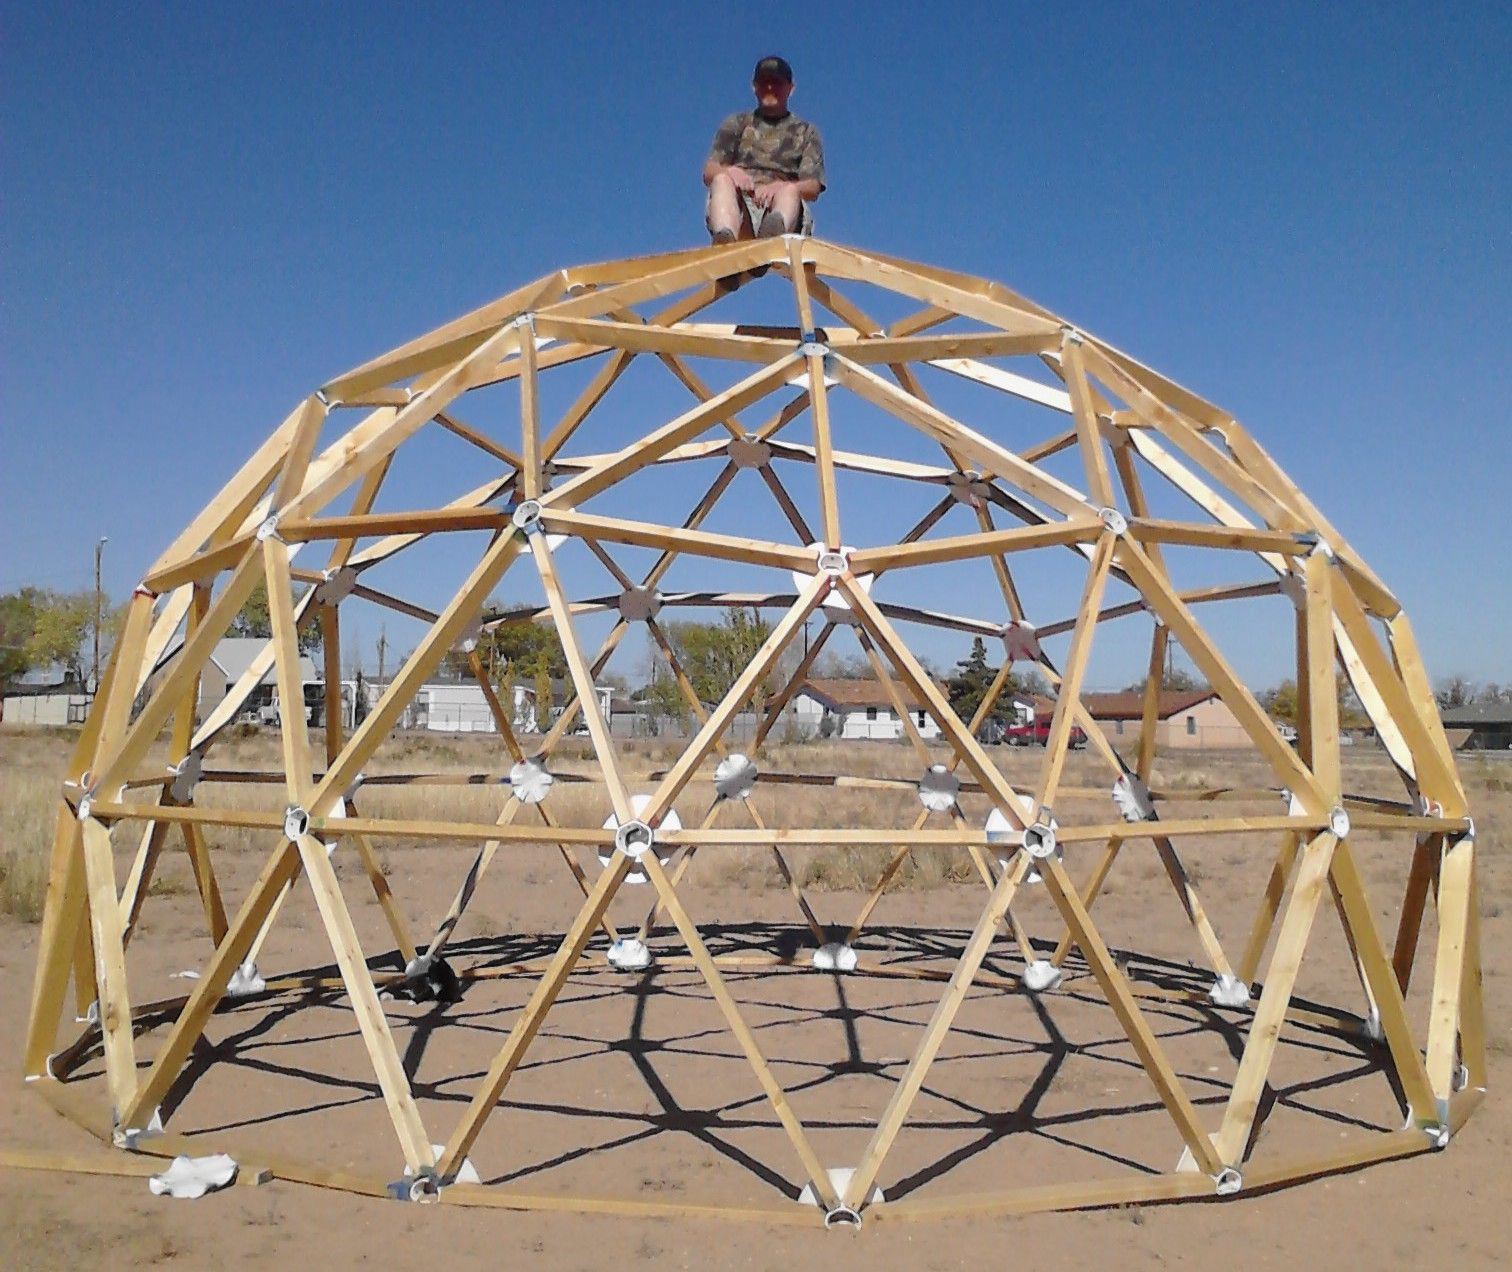 eedd98128740beaaad901f31228e59ec Greenhouse Plans Geodesic Dome Connectors on homemade pvc greenhouse plans, geodesic dome greenhouse covering, geodesic dome floor plans, geodesic dome playground plans, geodesic dome greenhouse kits, geodesic dome greenhouse winter, geo dome greenhouse plans, pvc geodesic dome plans, dome home kits and plans, small geodesic dome plans,